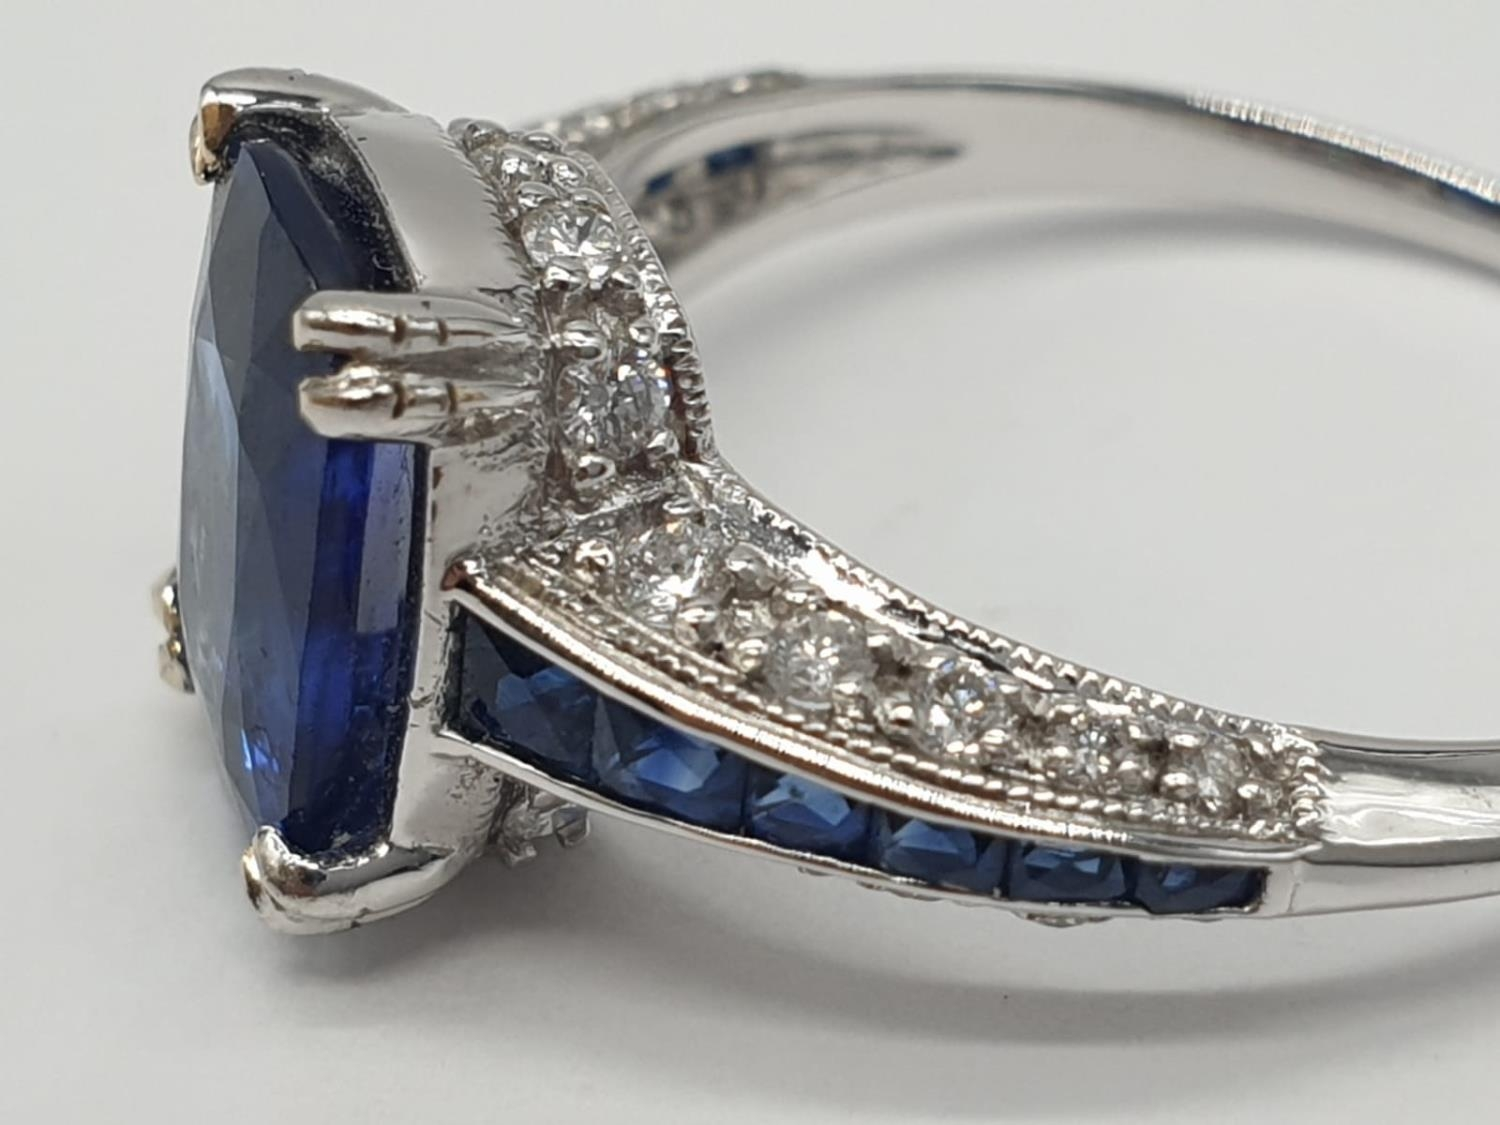 18ct White gold ring with sapphire and diamonds. Weighs 3.2g and is a size N. - Image 3 of 6